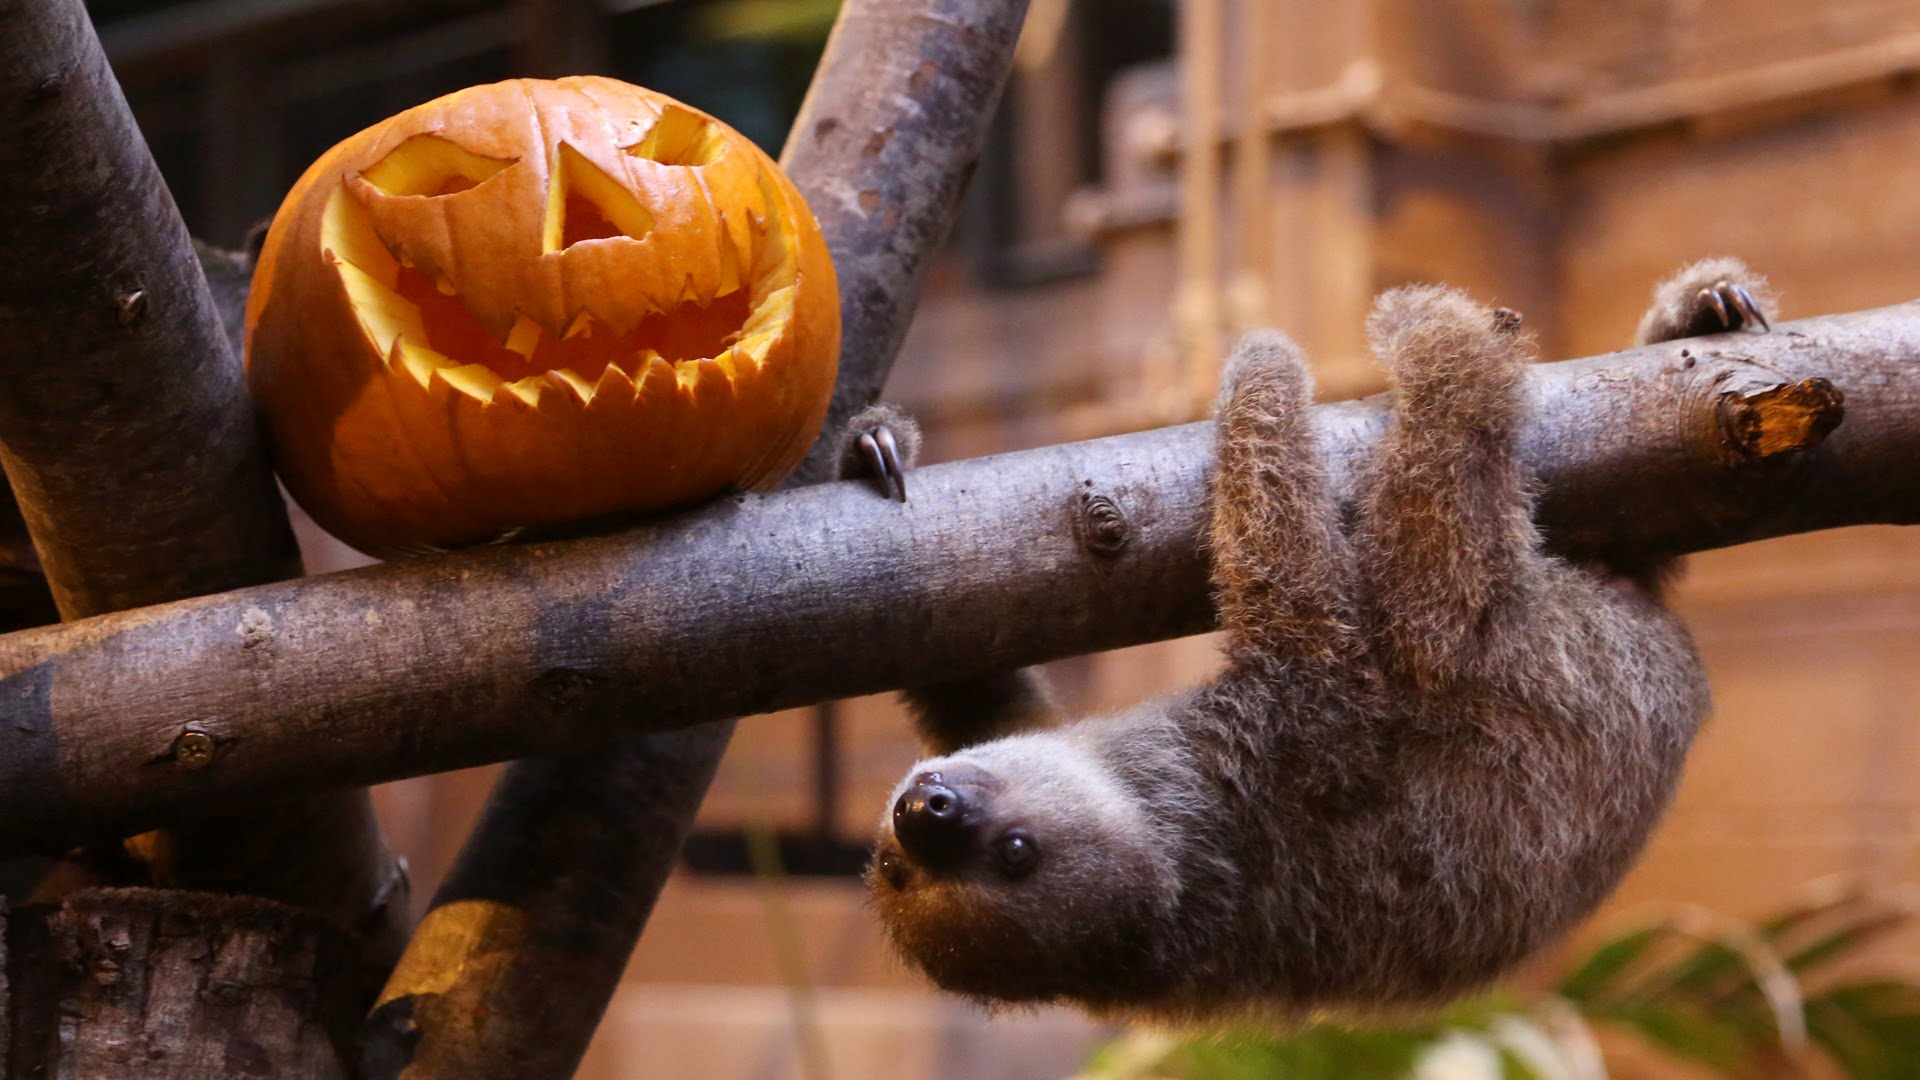 Edward the sloth is ready for his first Halloween